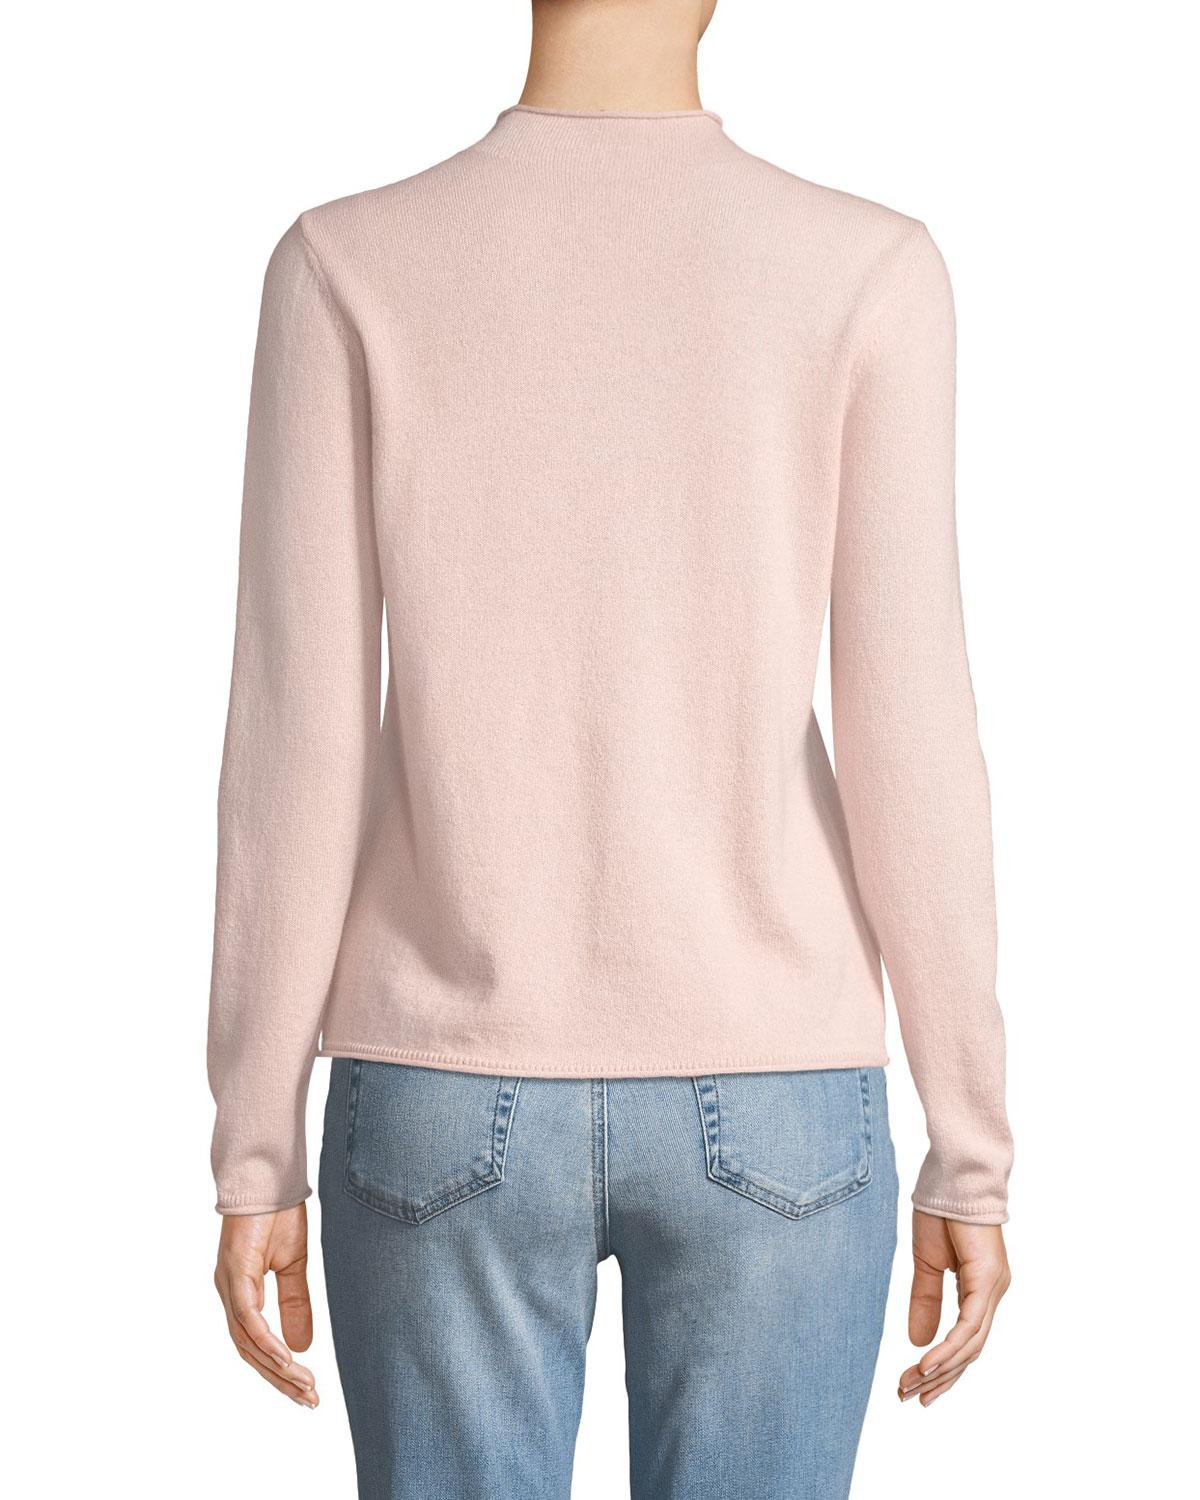 ebed97f6c842 Lyst - Neiman Marcus Cashmere Mock-neck Sweater Pink in Pink